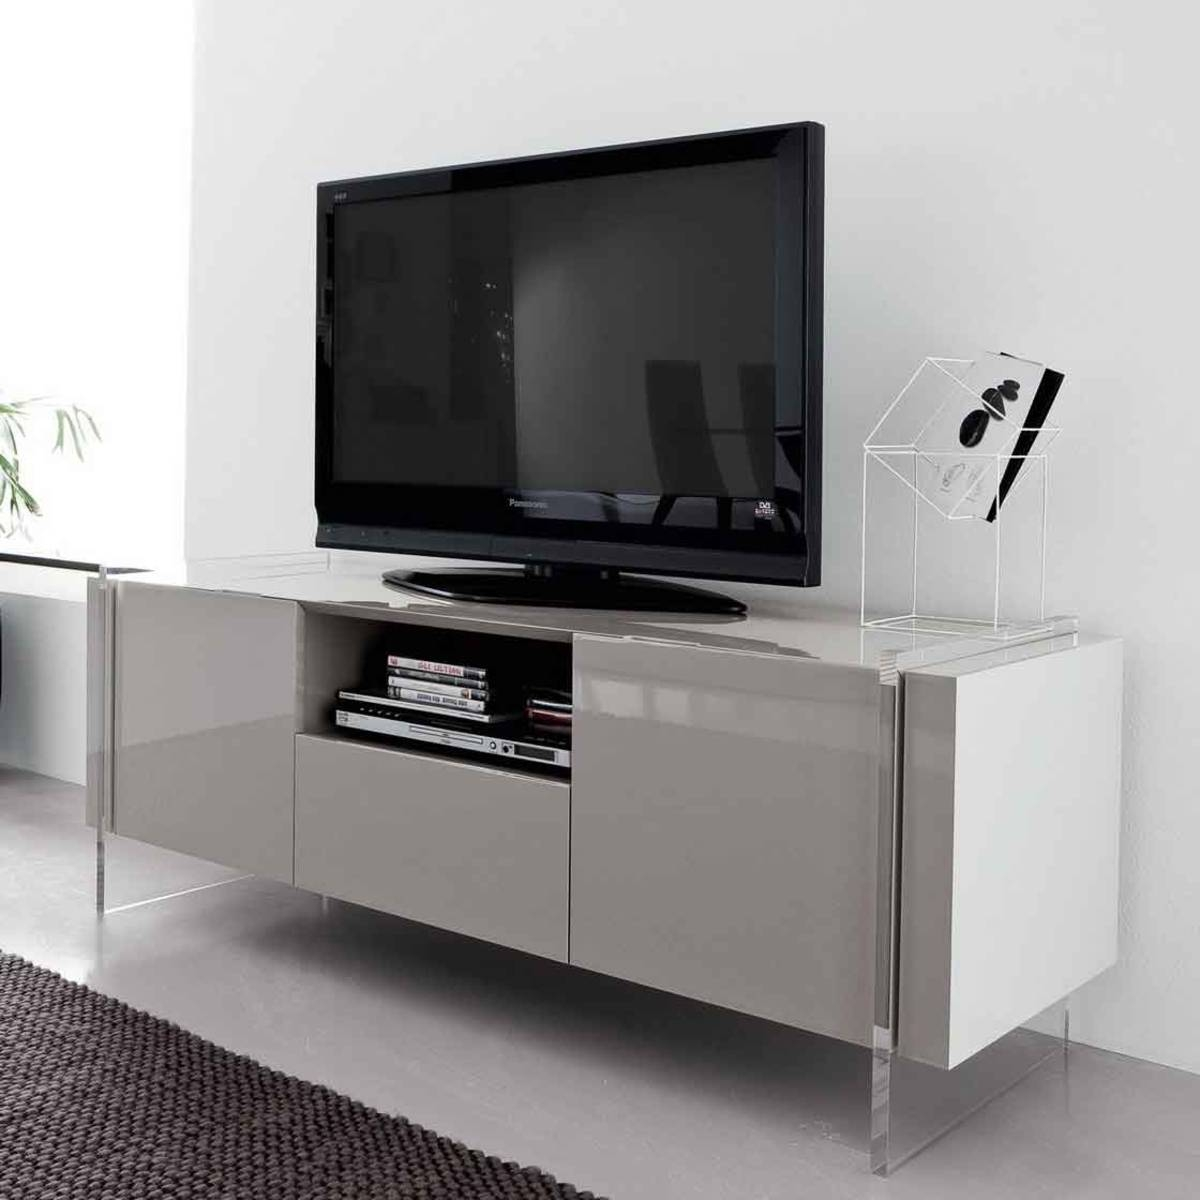 Unique Tv Stand Ideas, Furniture Cool Tv Stand Designs For A Regarding Cool Tv Stands (View 15 of 15)